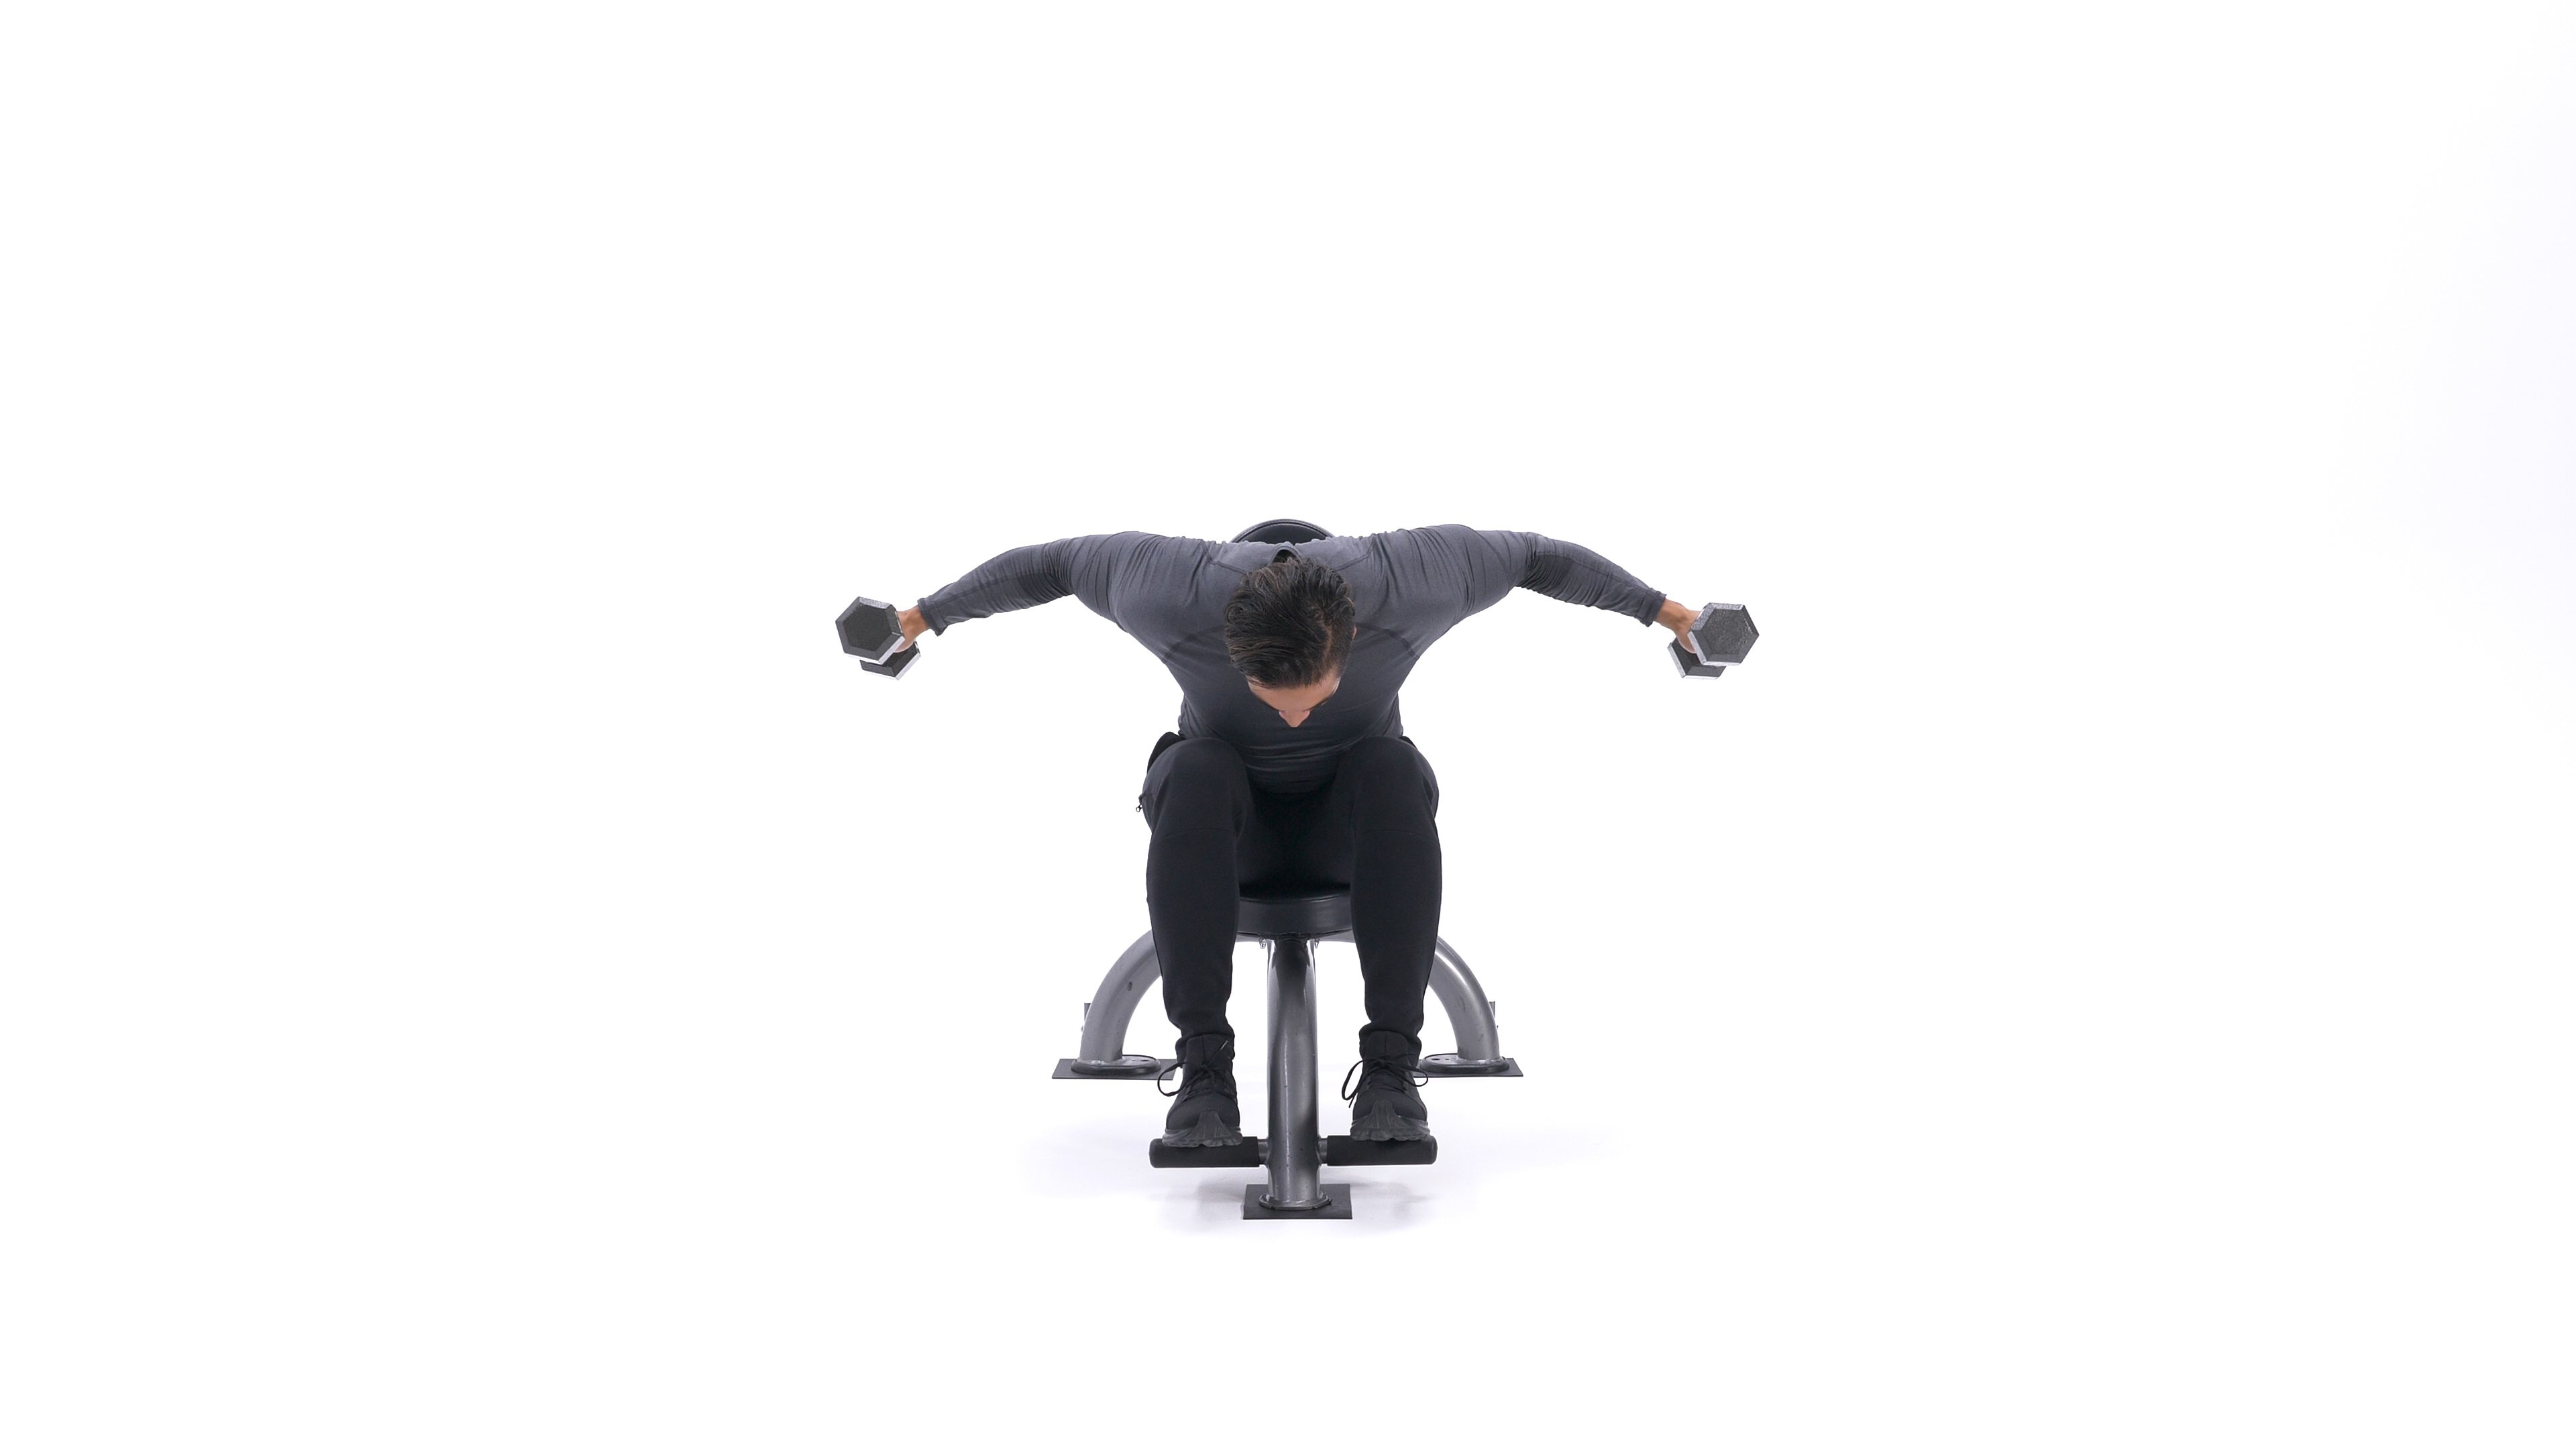 Seated rear delt fly image